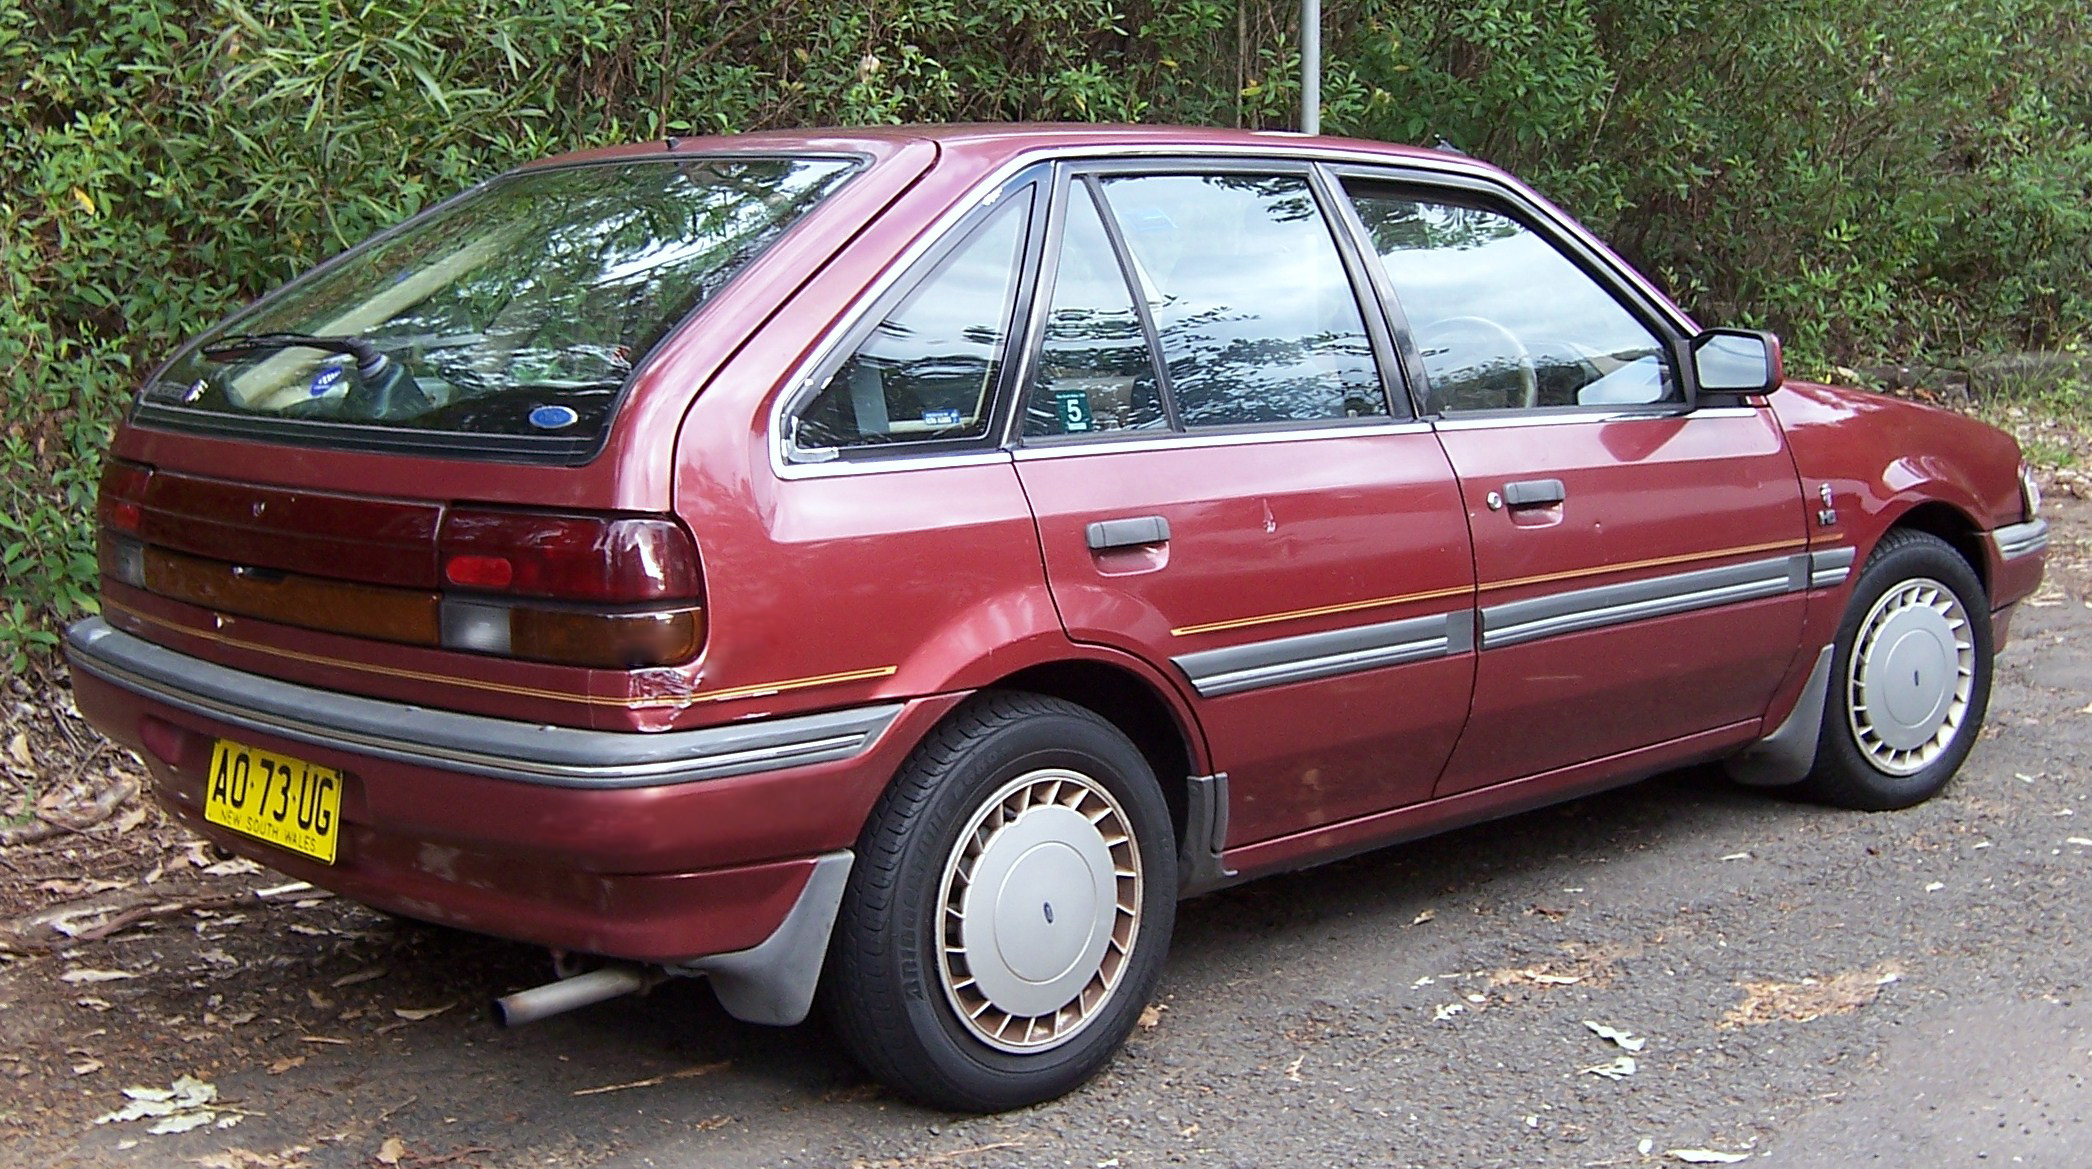 Ford Laser Ghia: Photos, Reviews, News, Specs, Buy car